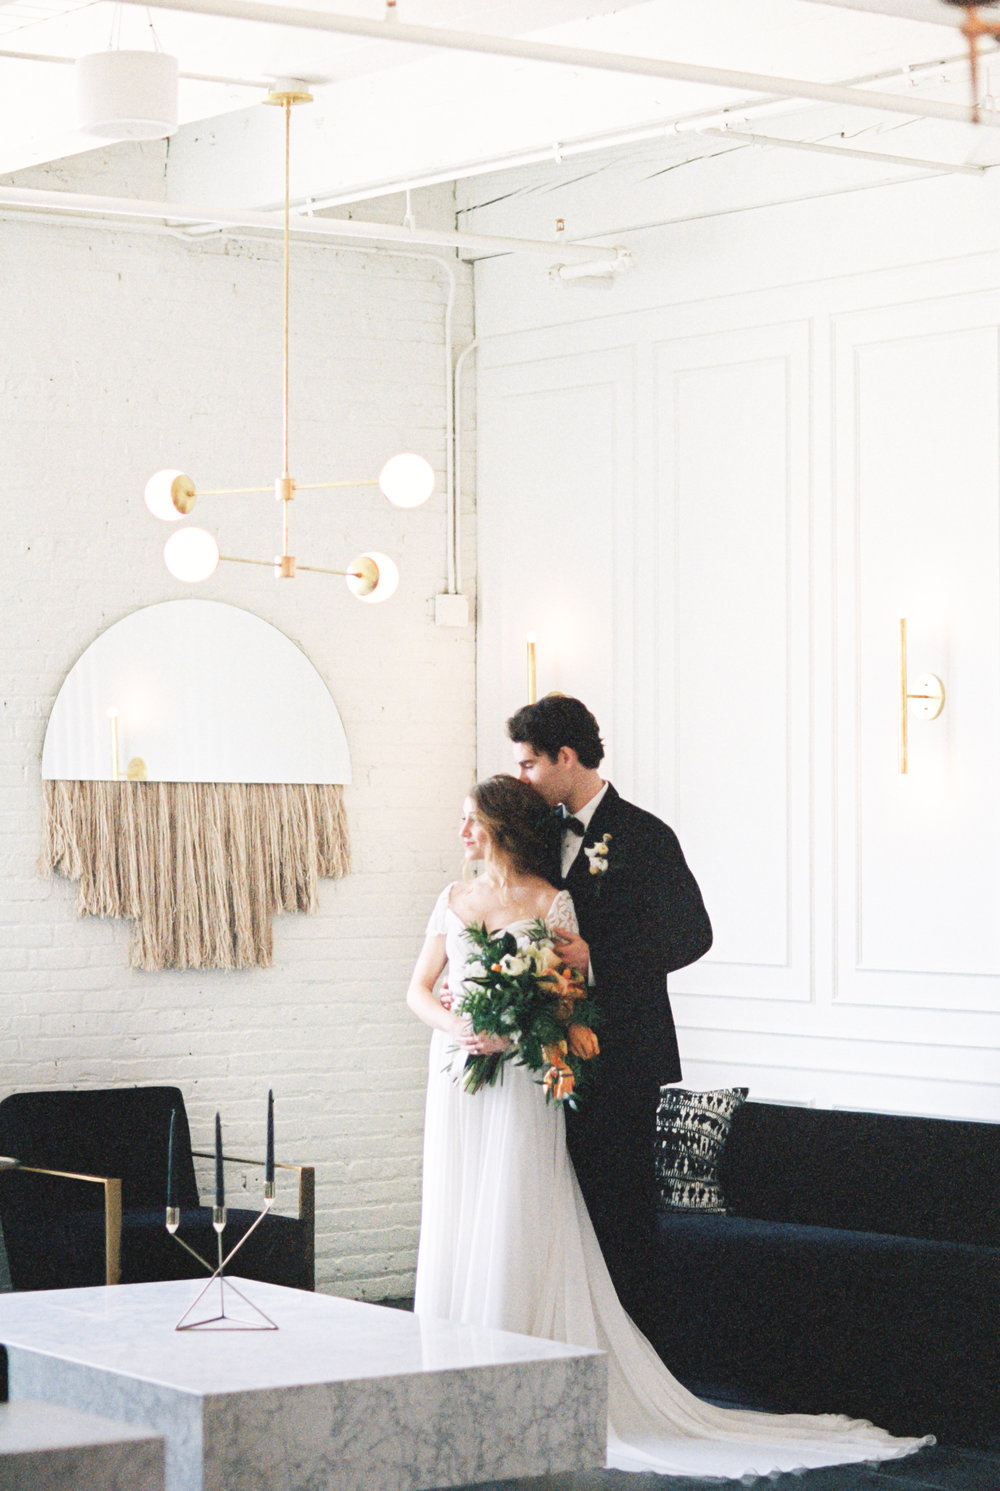 Boho bride and groom pose for wedding photos at modern wedding venue with lots of natural light, and beautiful greenery for this Chicago wedding styled shoot. Find more wedding inspiration at chitheewed.com!